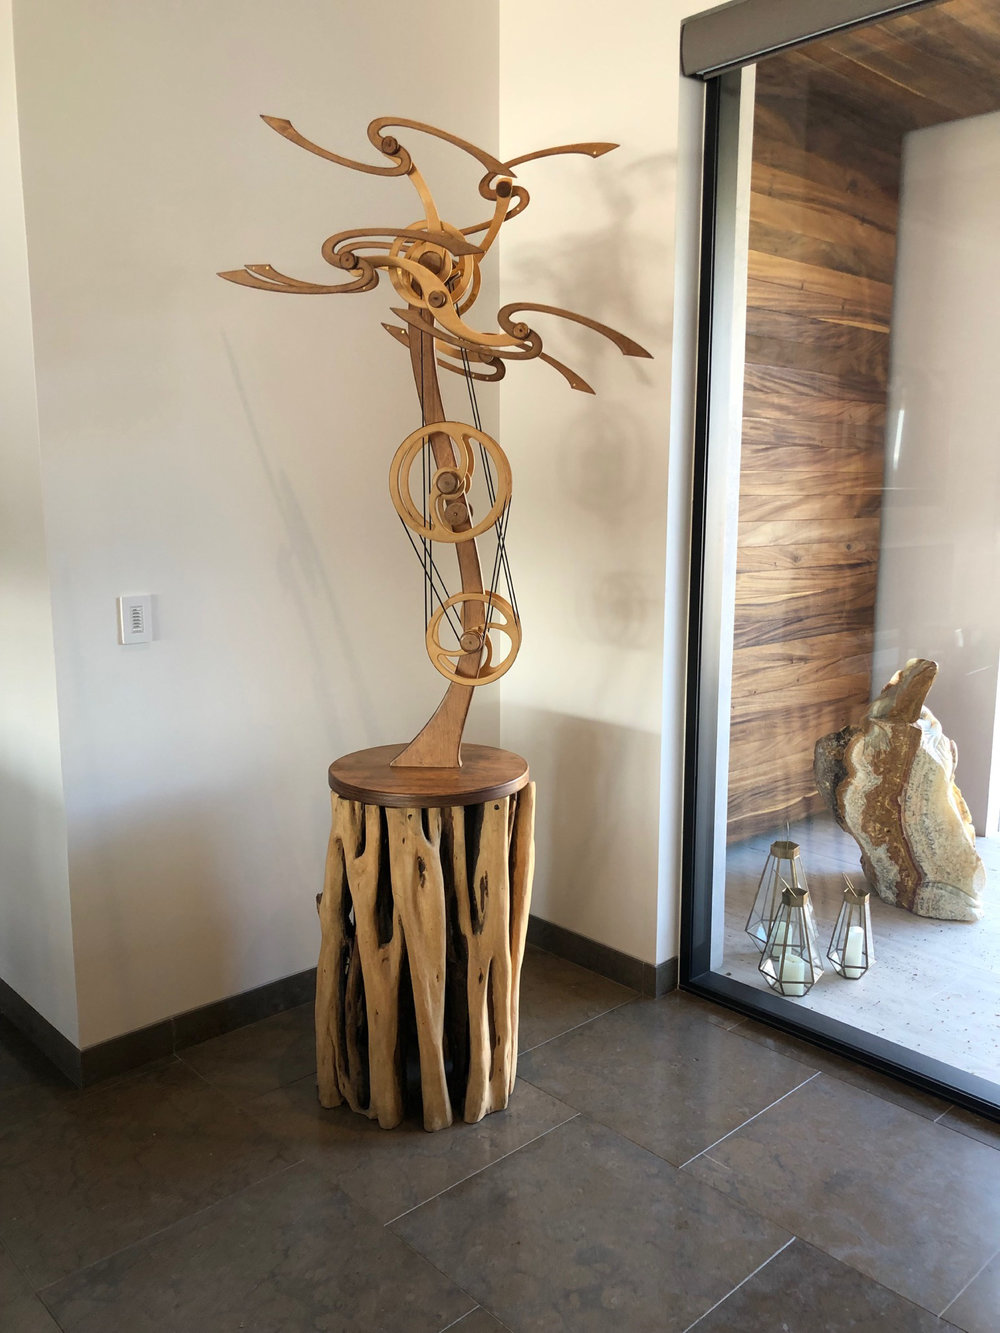 Willow Wind Kinetic Sculpture by David C. Roy of Wood That Works, created in 2009